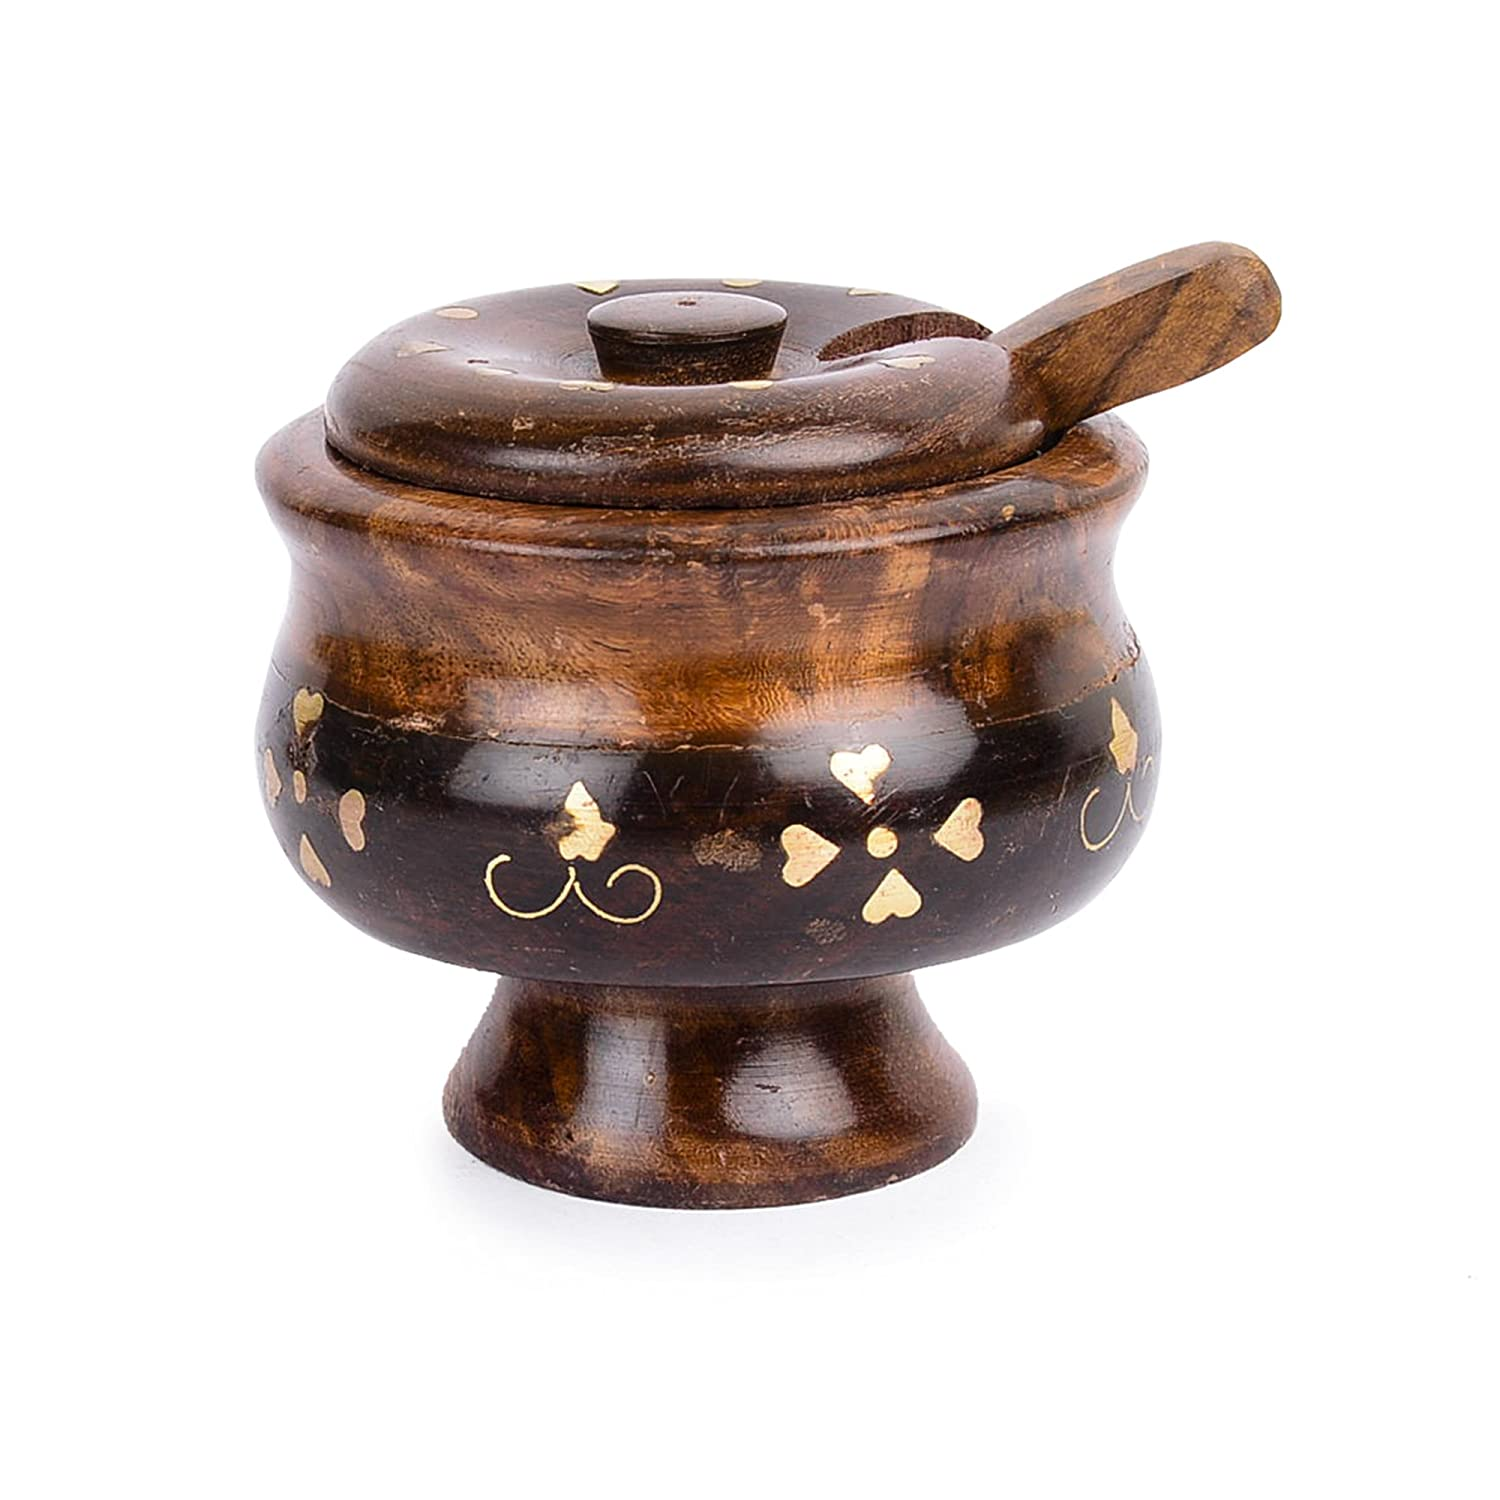 Rusticity Wooden Sugar Bowl with Lid and Spoon - Brass | Handmade | (5x4in)